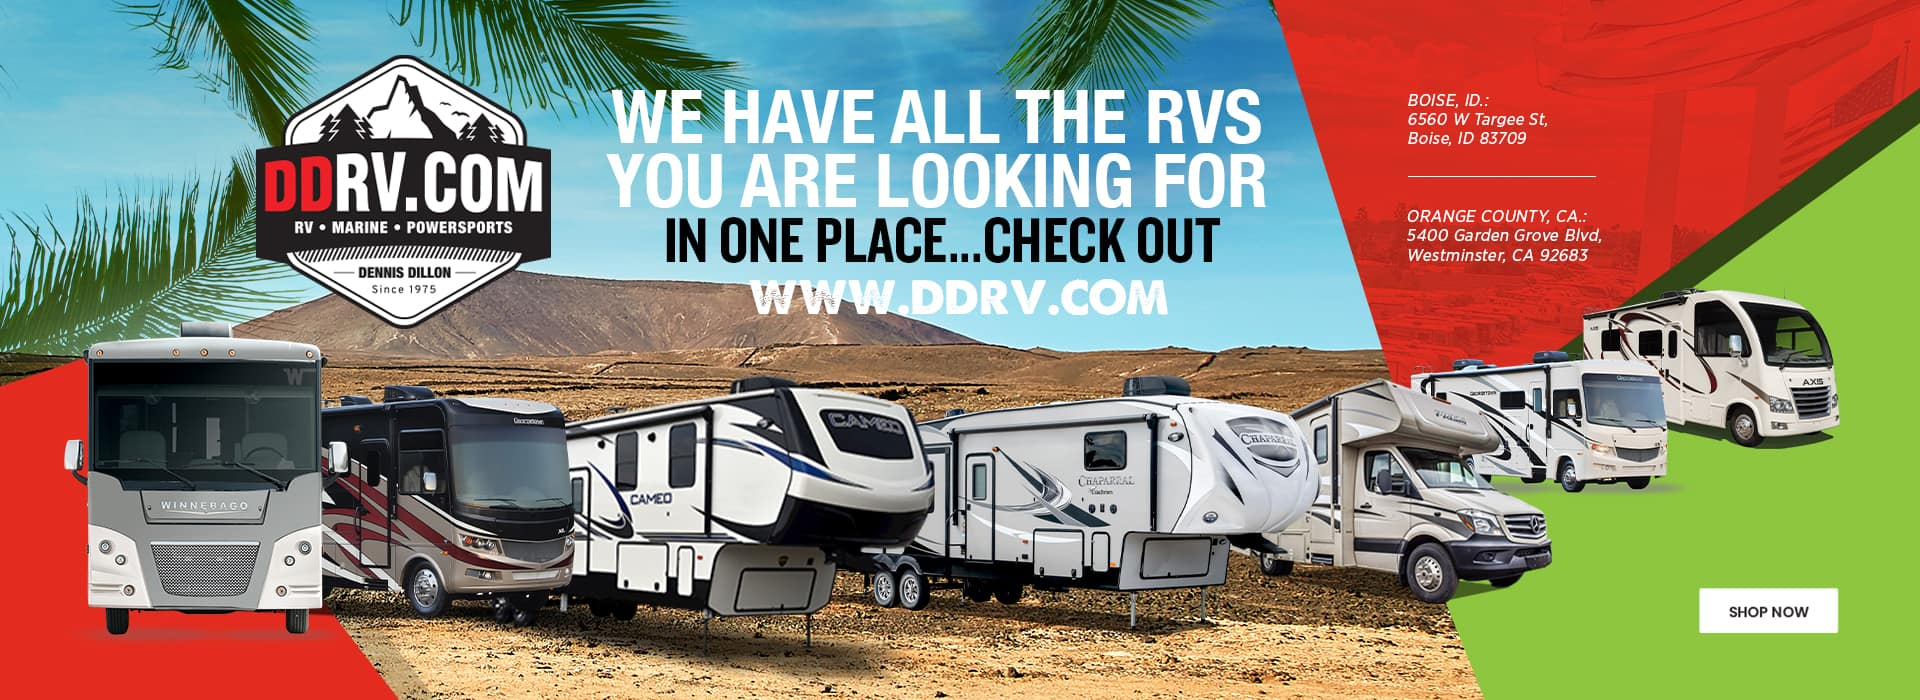 Dennis Dillon RV Marine Powersports | Boise RV & Boat Dealership